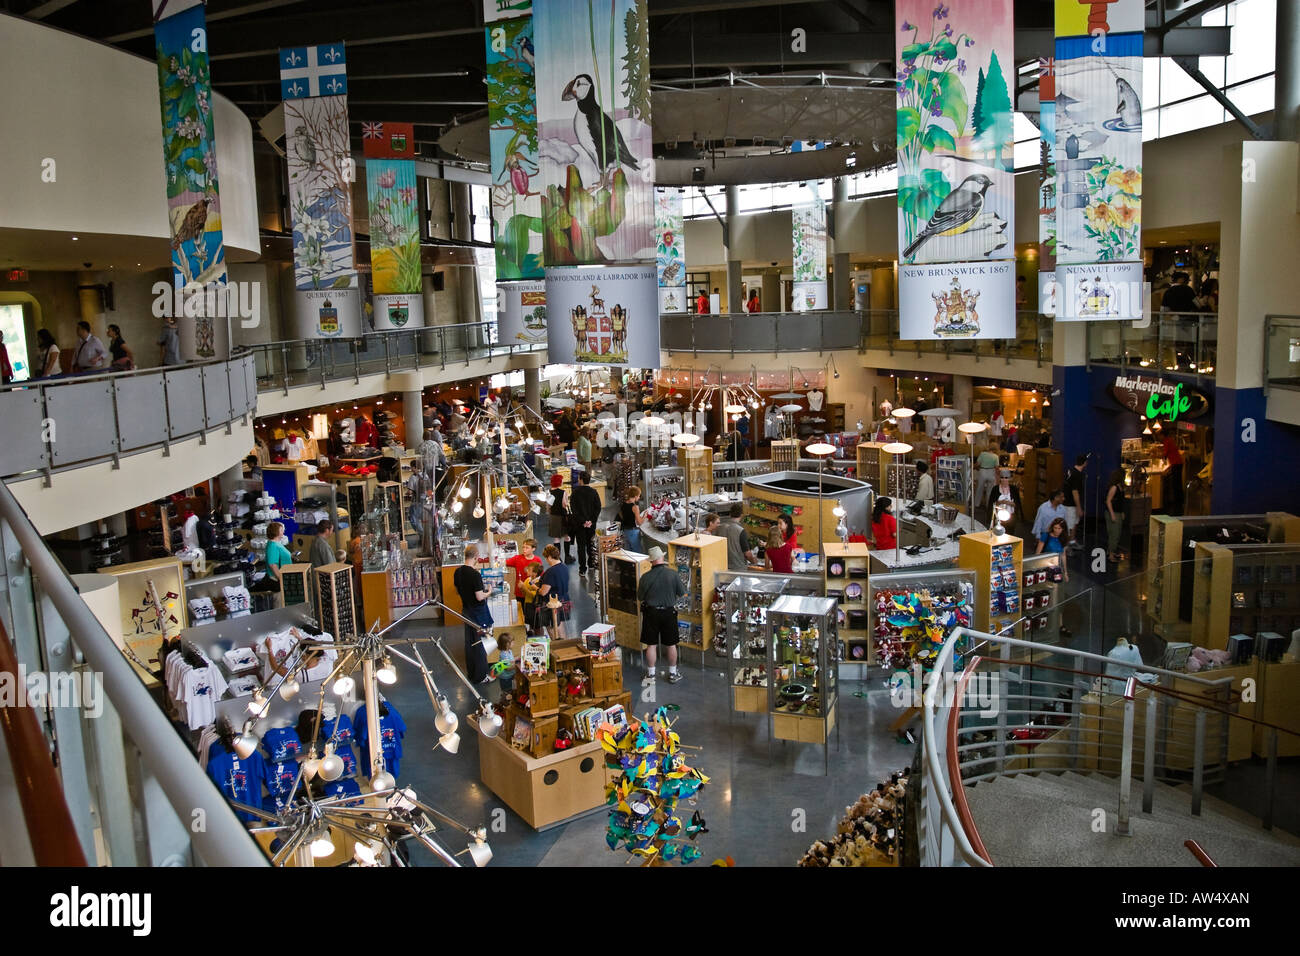 People Shopping At The Cn Tower Gift And Souvenir Shop Inside Cn